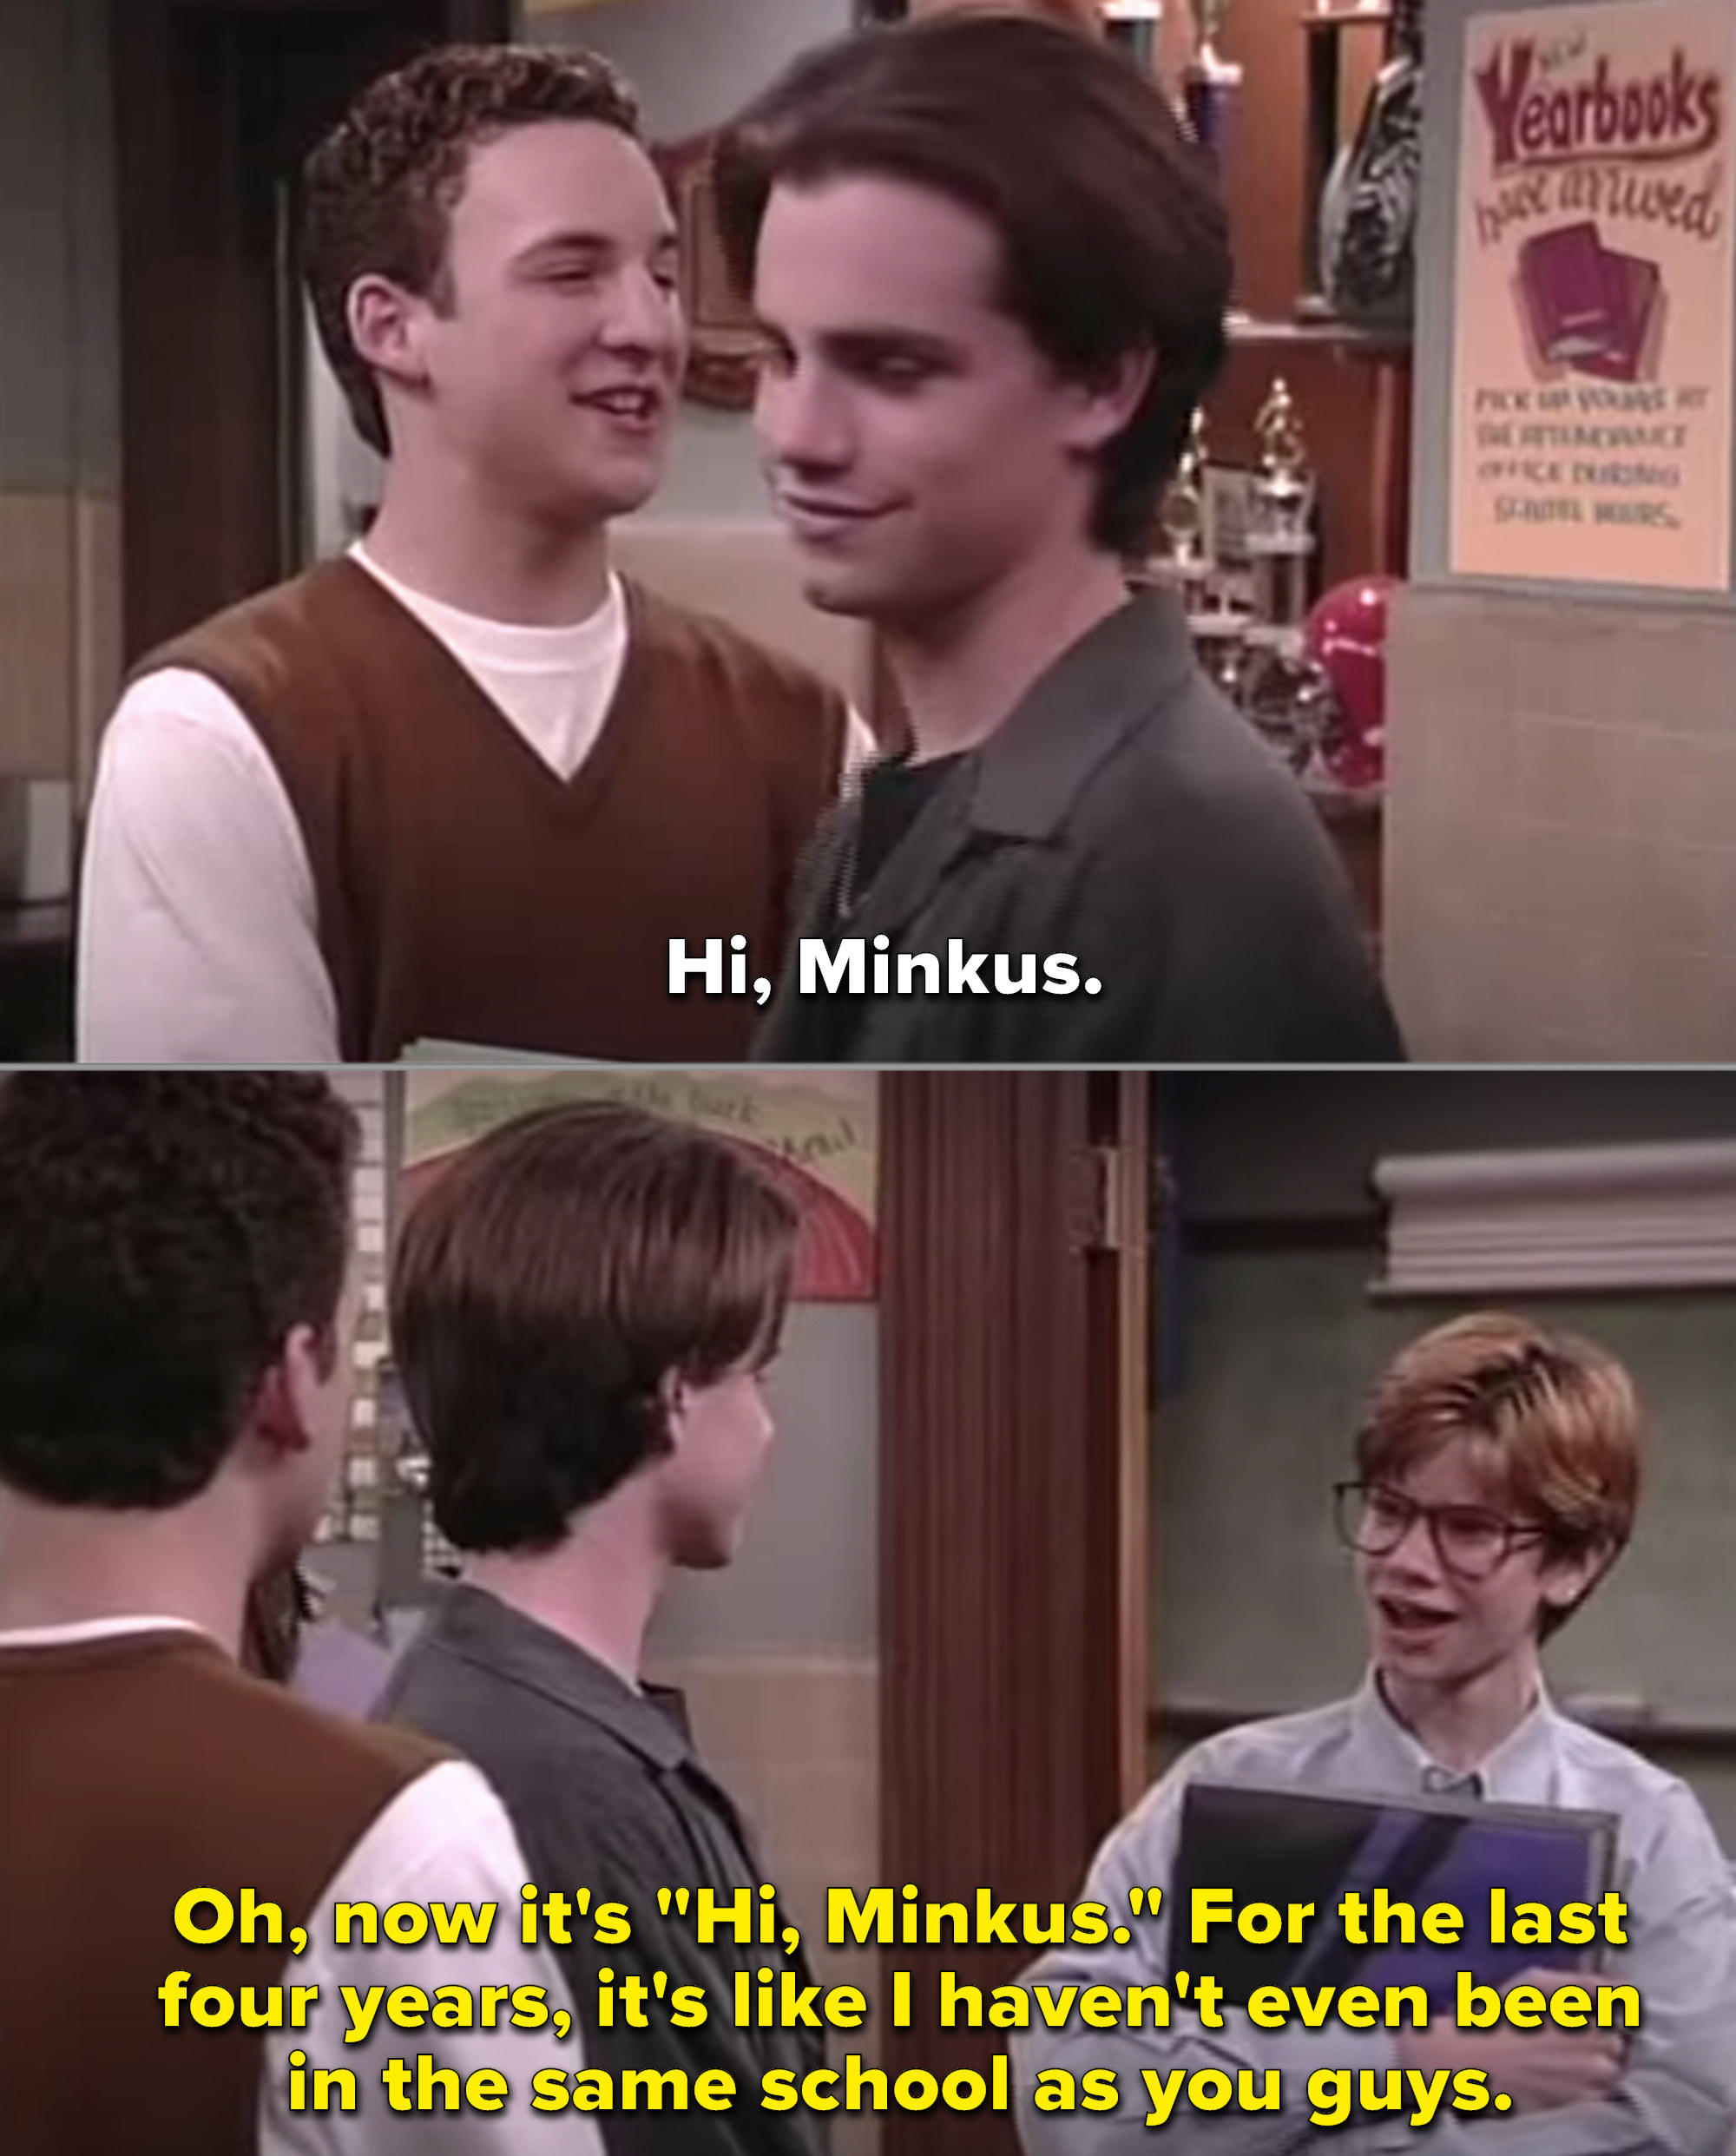 Minkus appearing as a teenager for one random episode